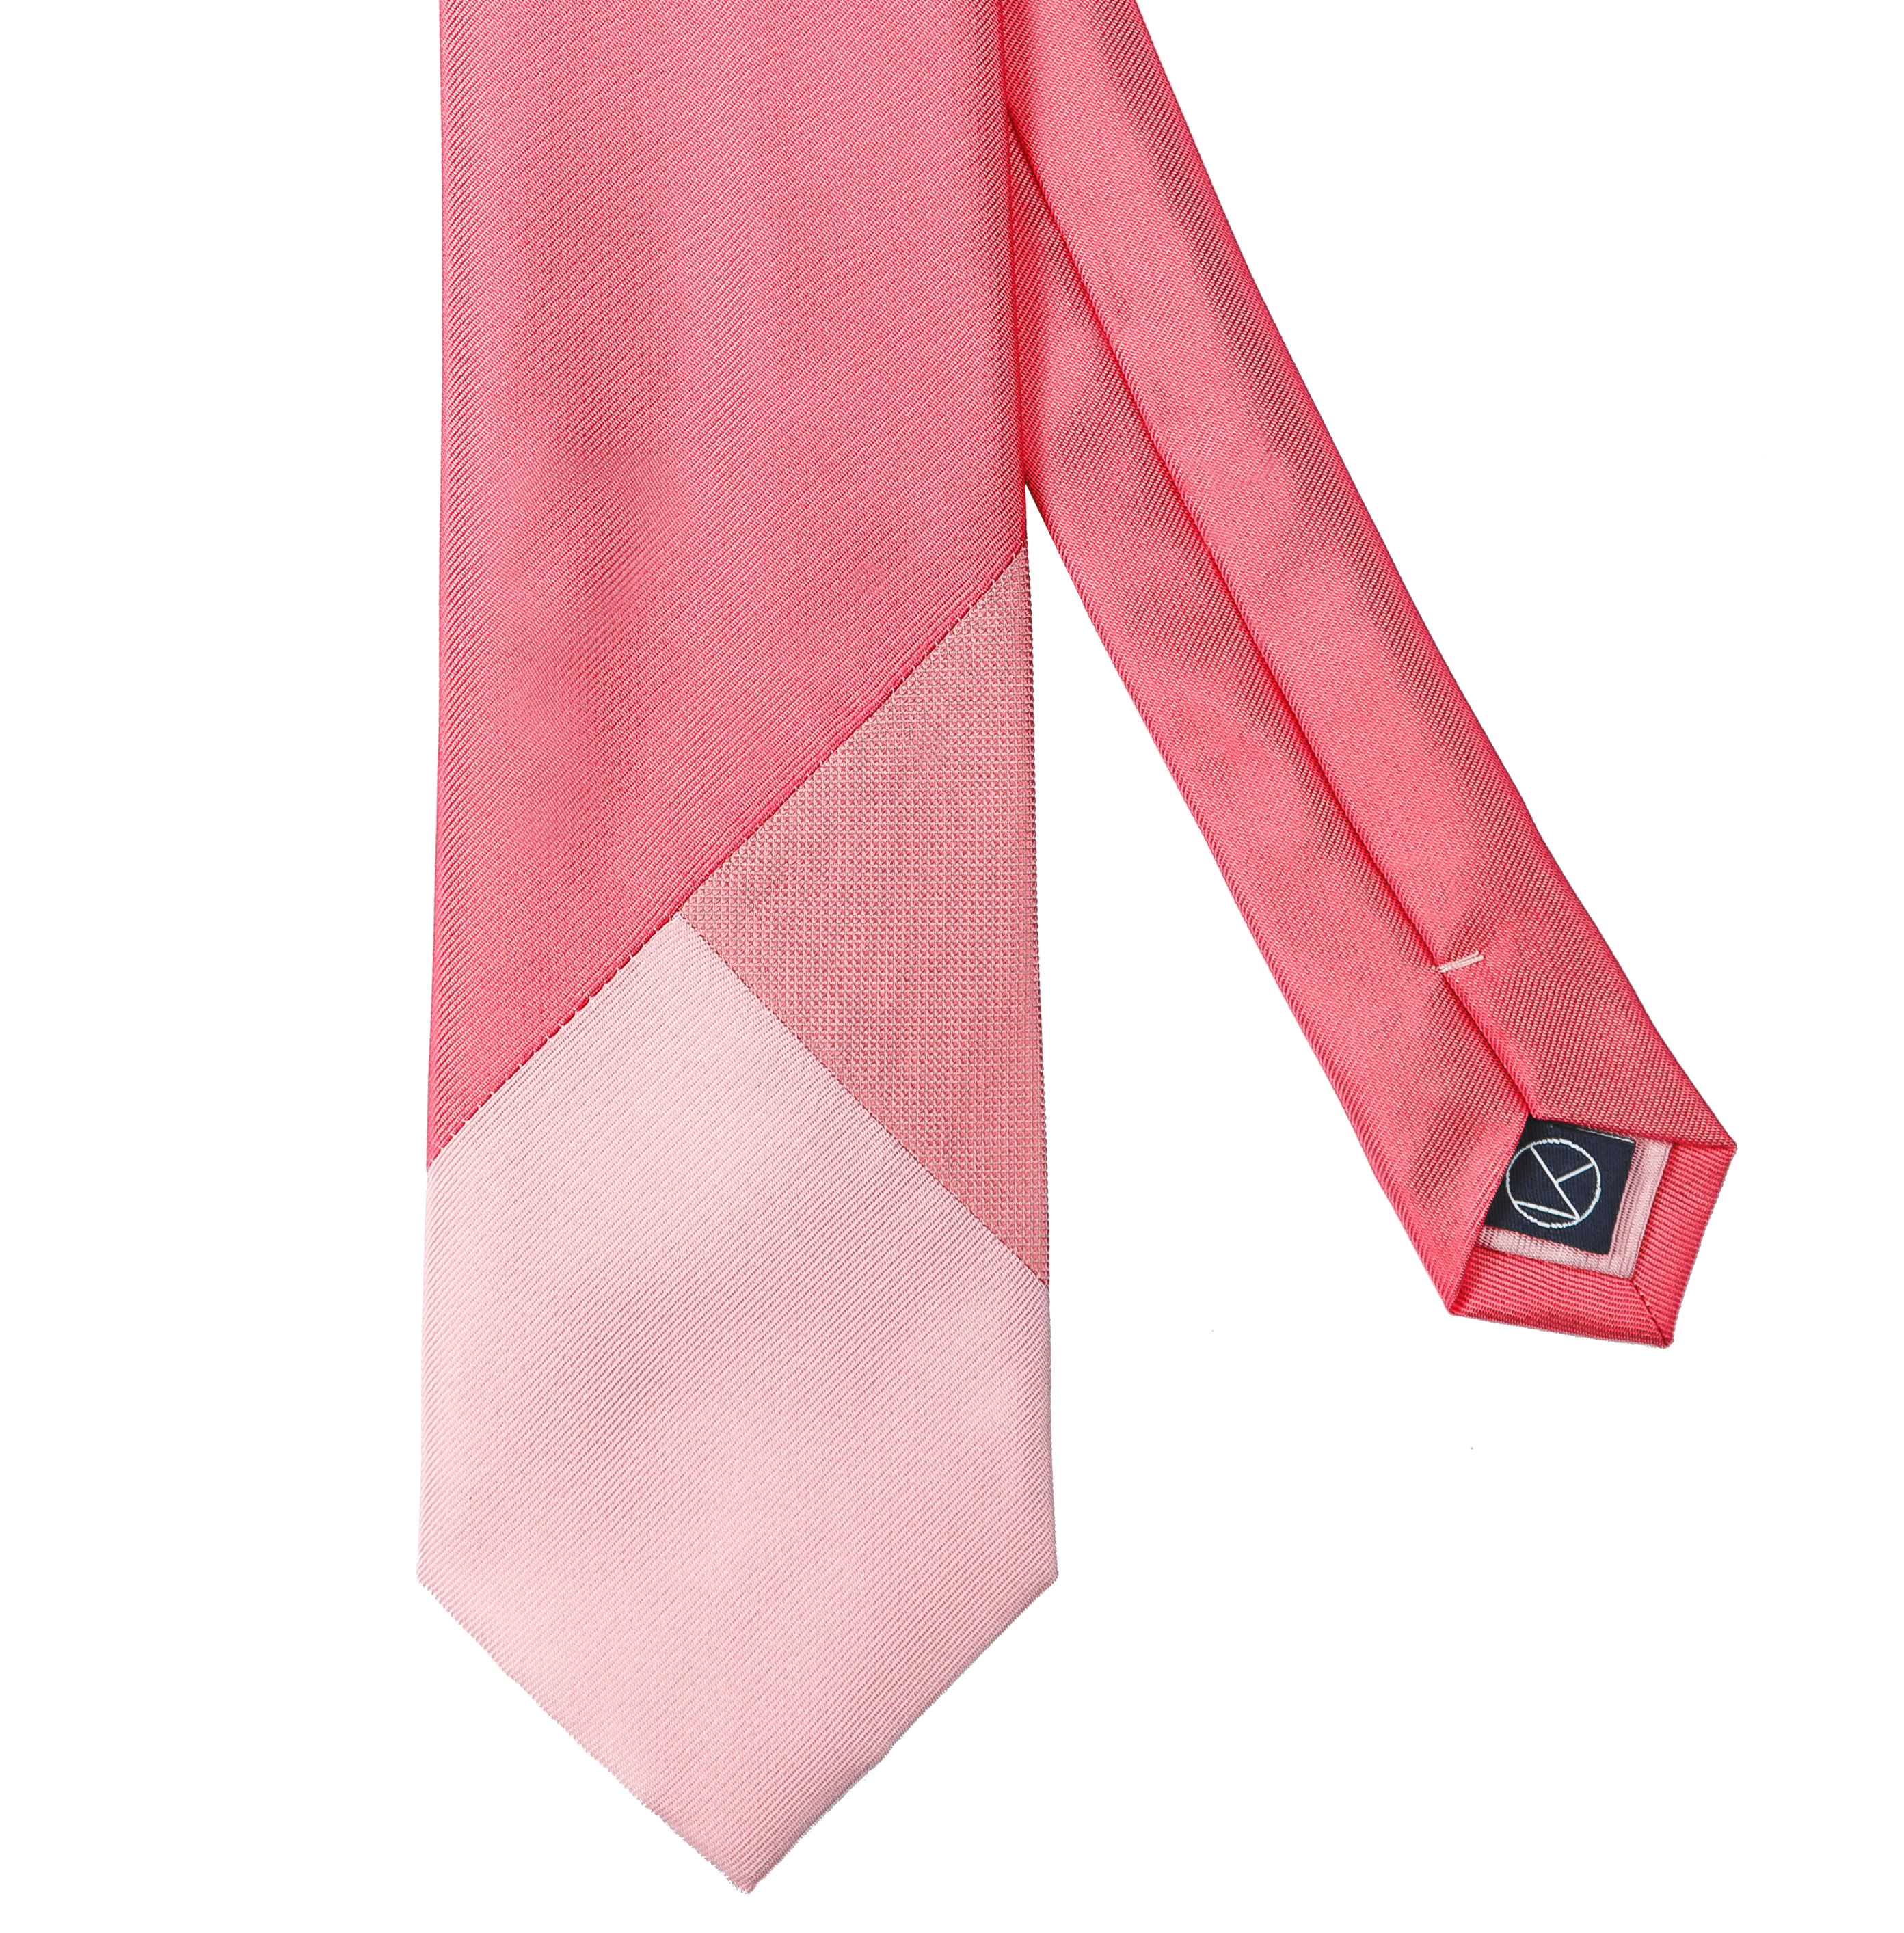 Three-piece necktie with a blend of pink hues with different textures of the softest silk